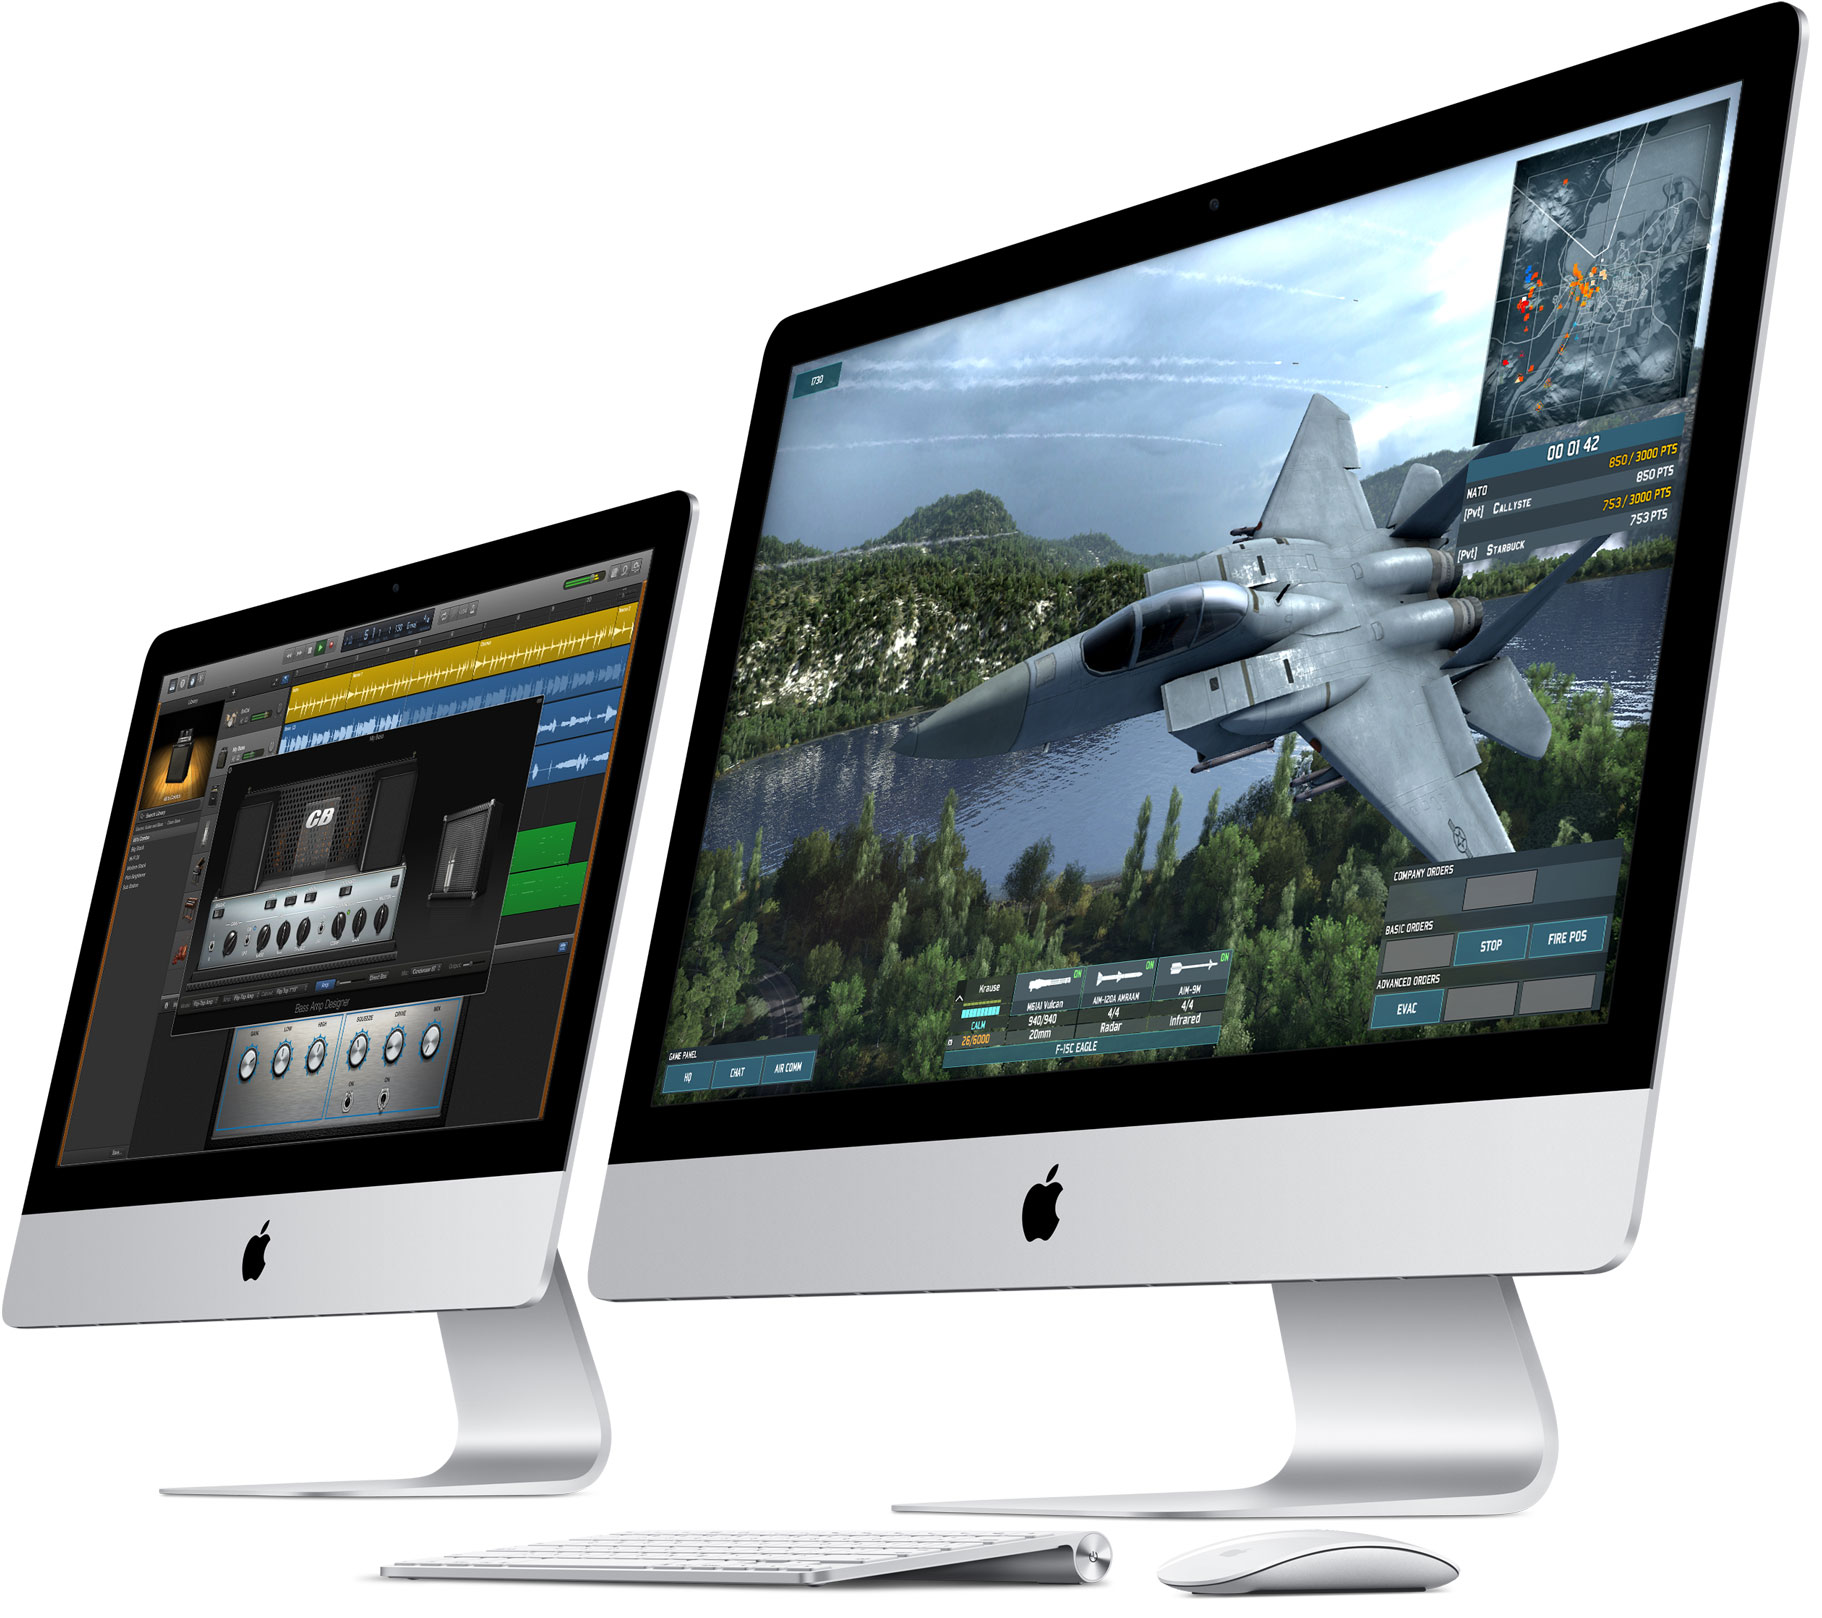 iMac 21.5 and 27 inch teaer 001